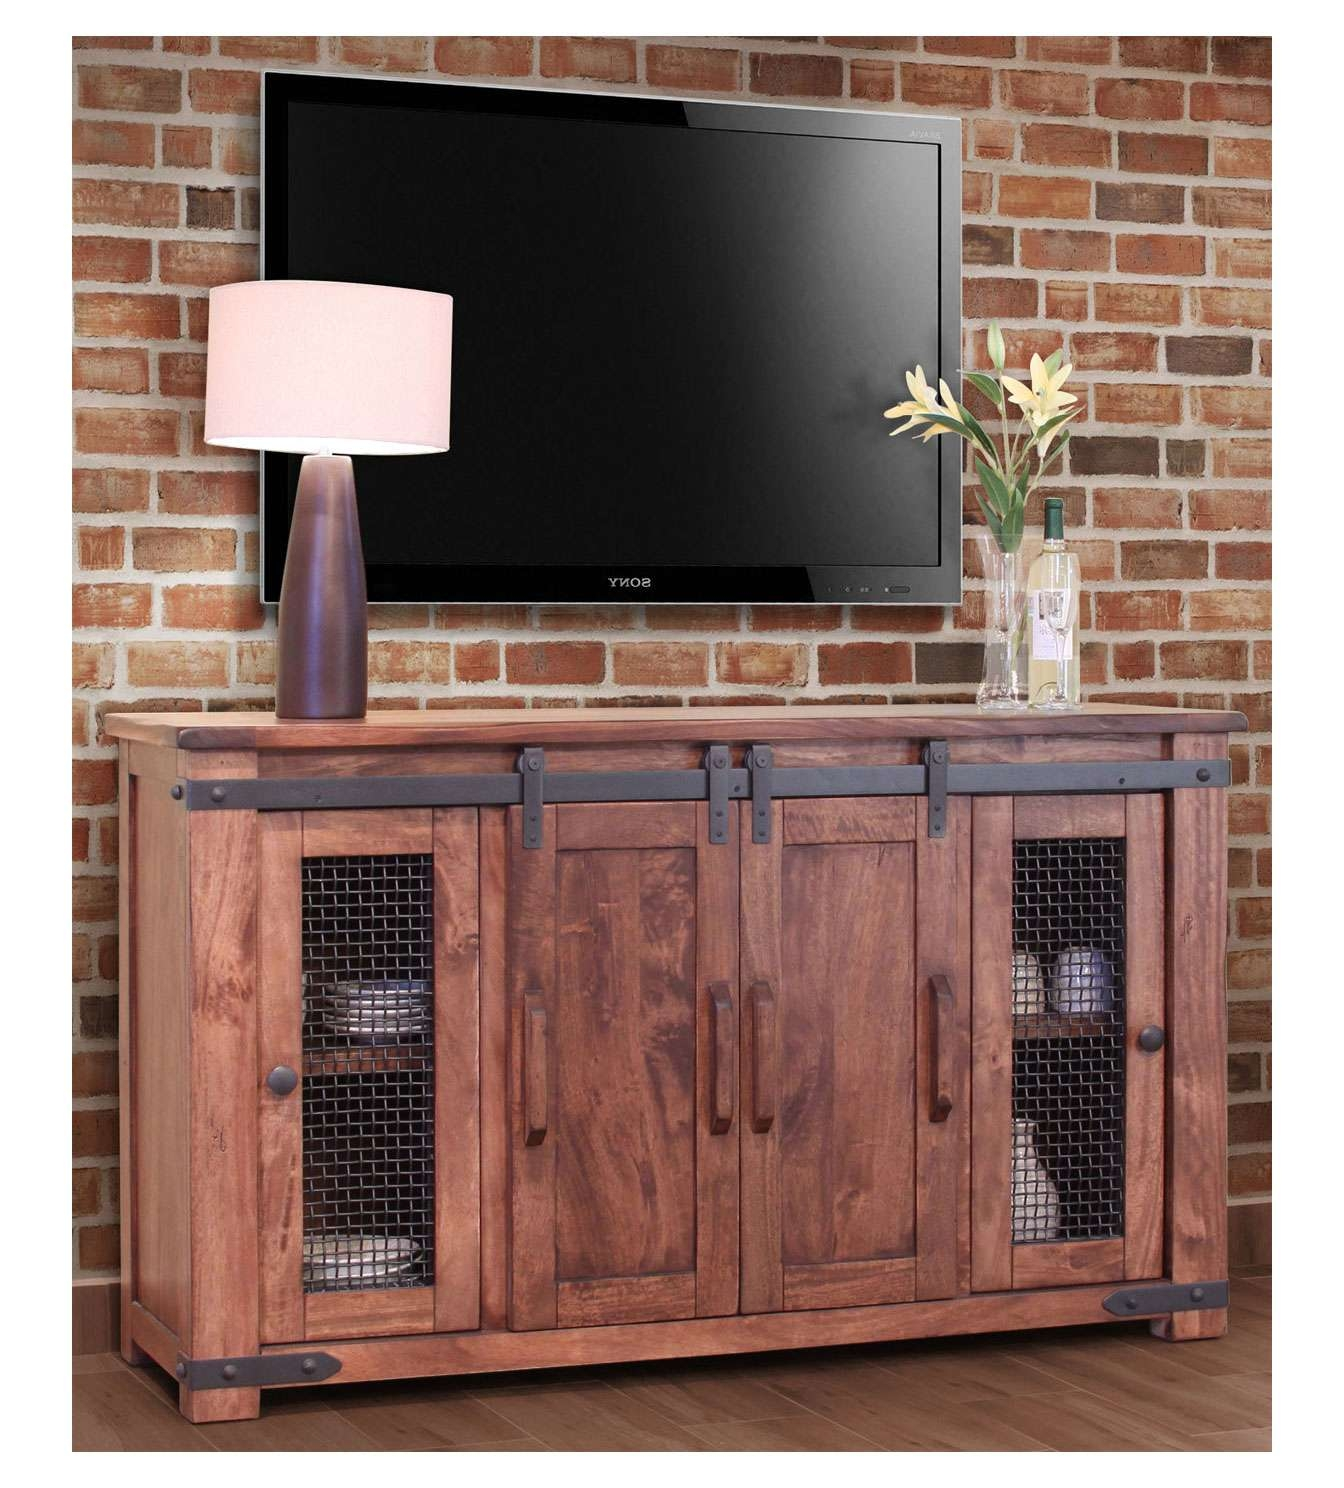 Lovely Tall Skinny Tv Stand 12 For Your Home Decorating Ideas With Within Skinny Tv Stands (View 5 of 15)